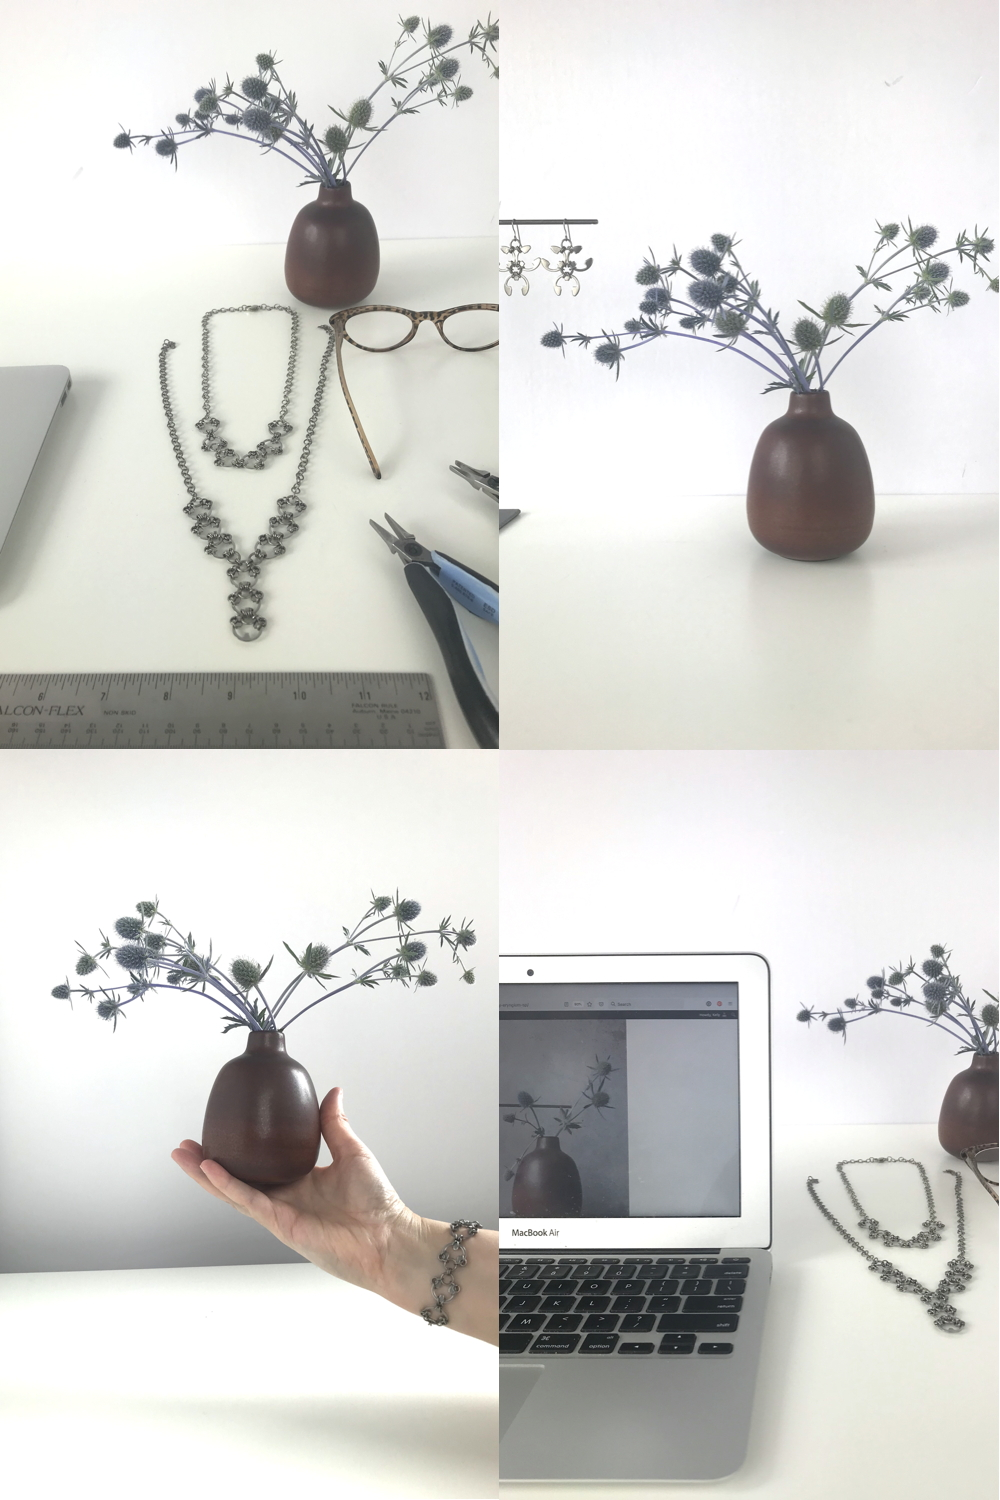 Compiled image of four photos featuring a small floral arrangement of sea holly and Wraptillion's jewelry in the studio.